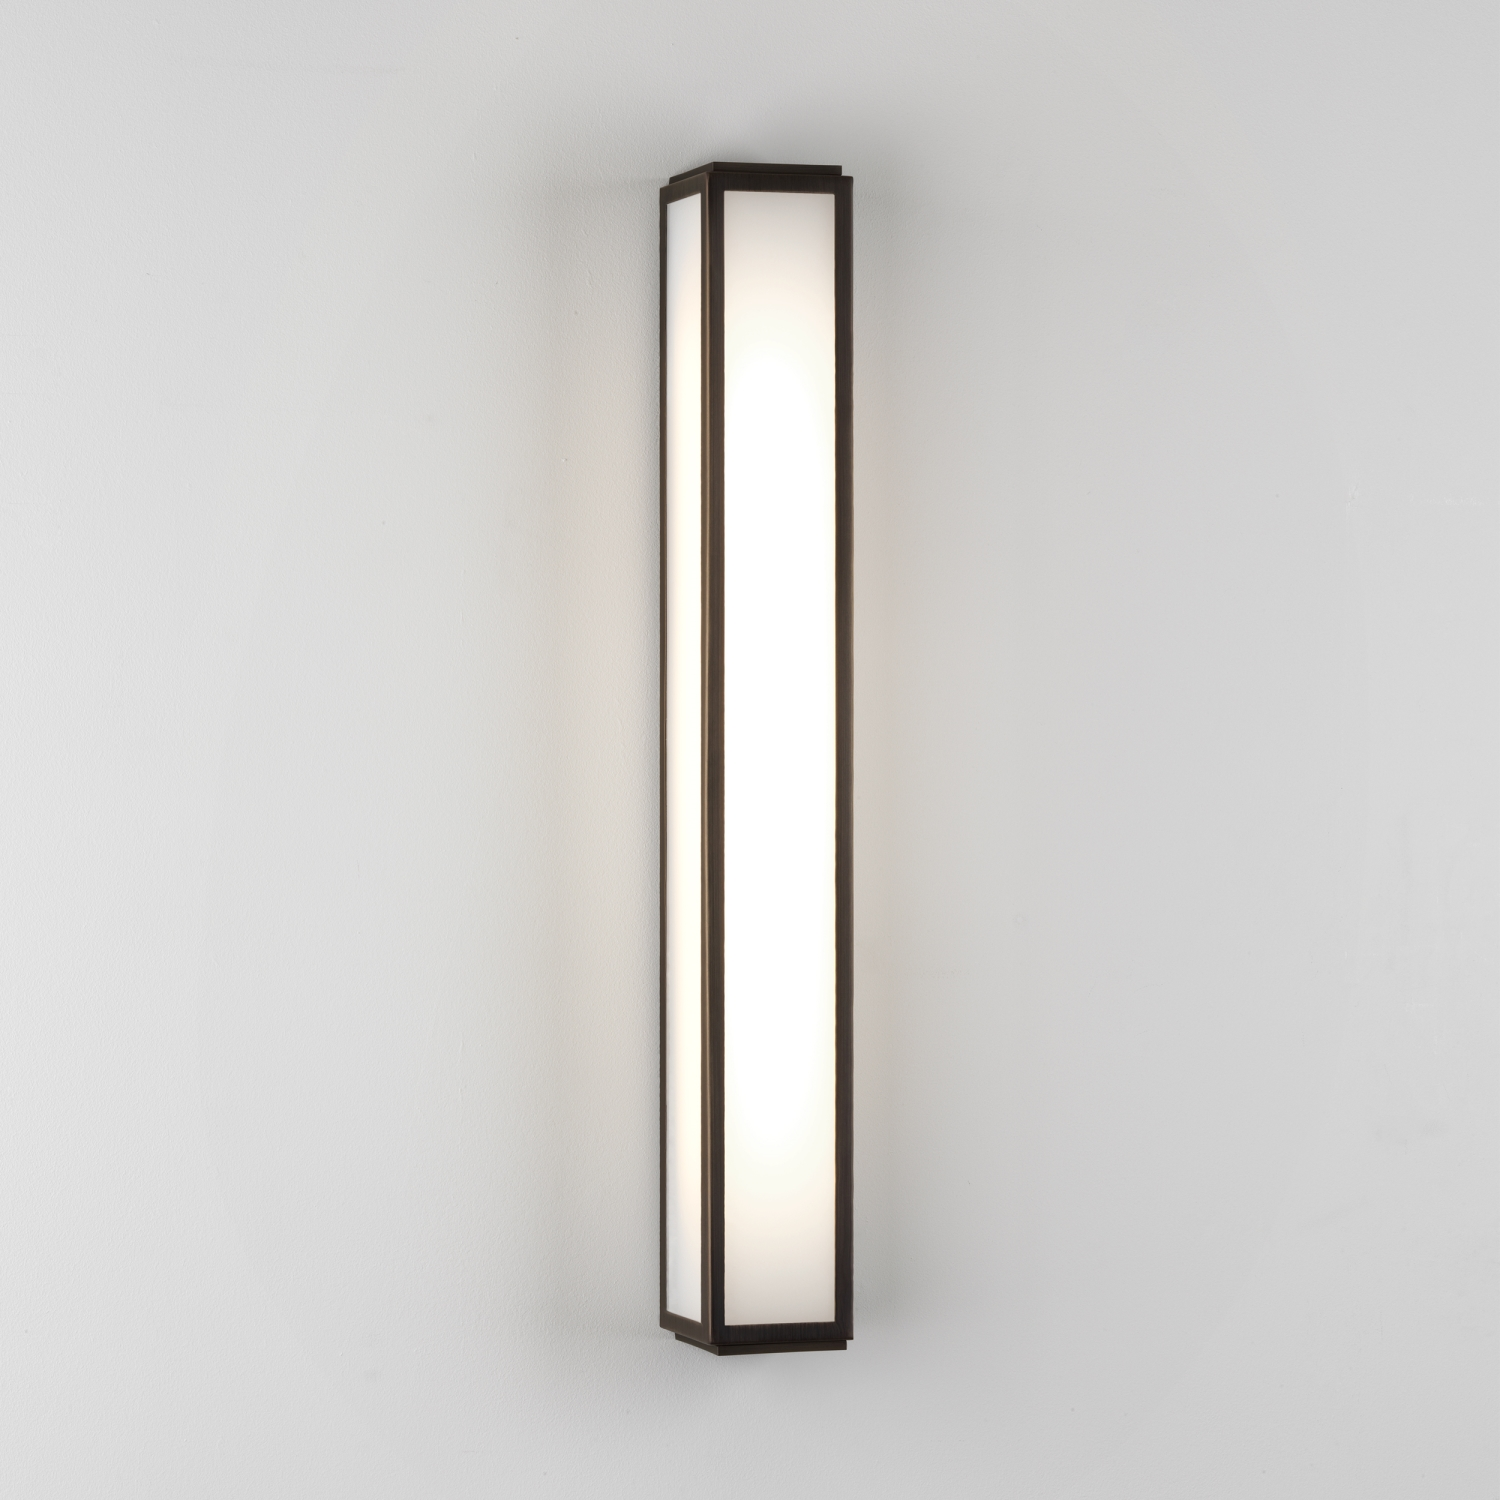 ASTRO Mashiko 600 Bathroom LED wall light 10.8W LED 3000K warm white